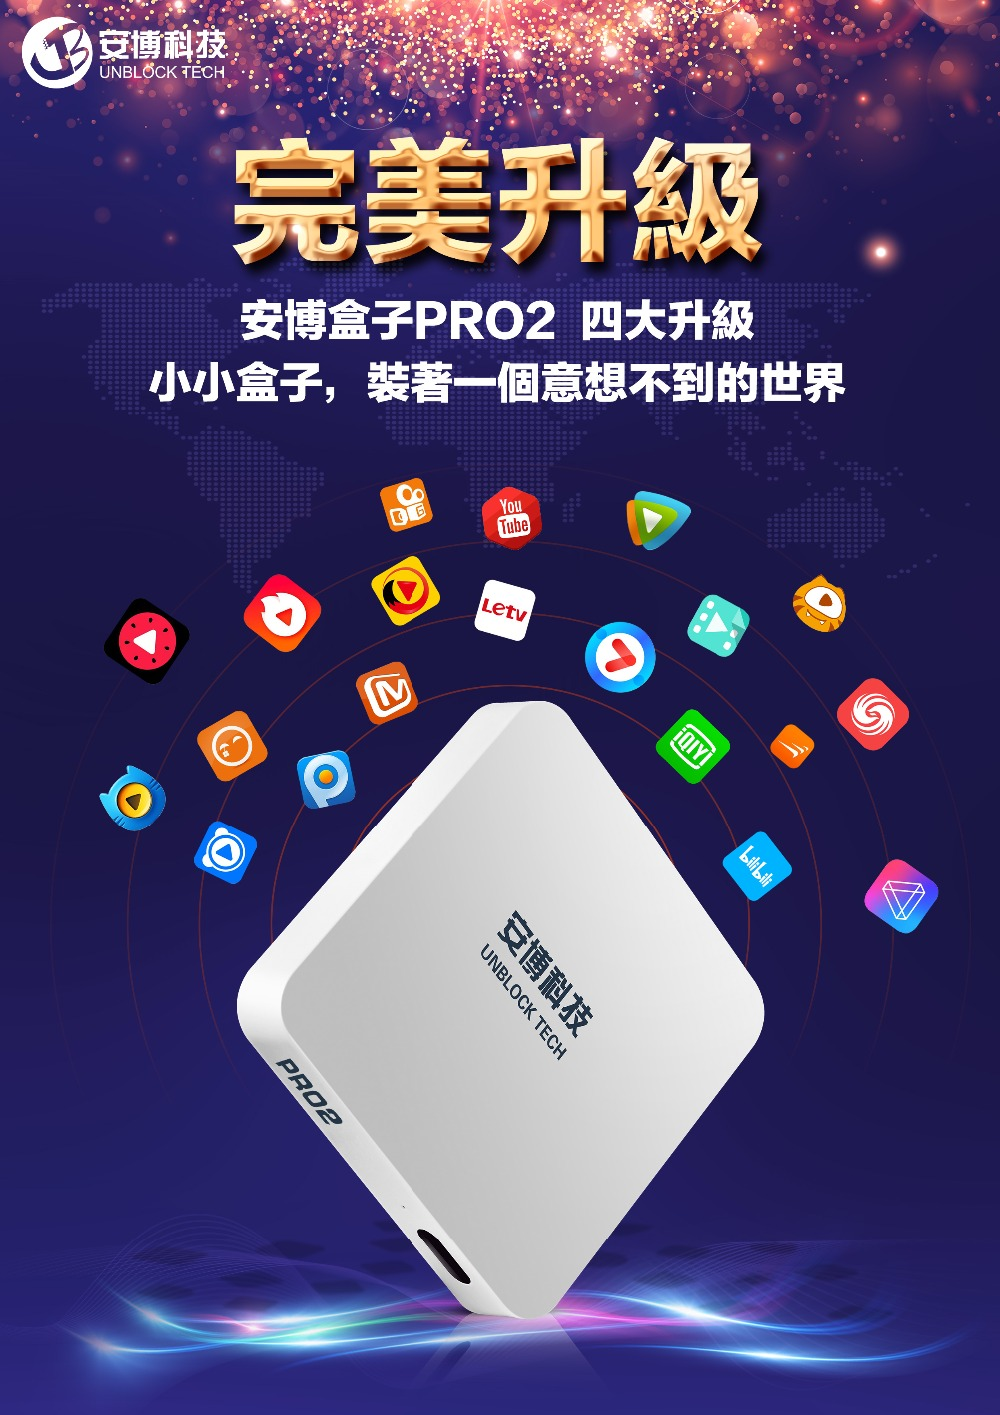 [Genuine]Unblock UBOX PRO2 Gen 6 16G Android 7.0 Smart TV Box HD 4K Japan Korean Malaysia Singapore HK TW 1000+ Live TV Channels-in Set-top Boxes from Consumer Electronics    1